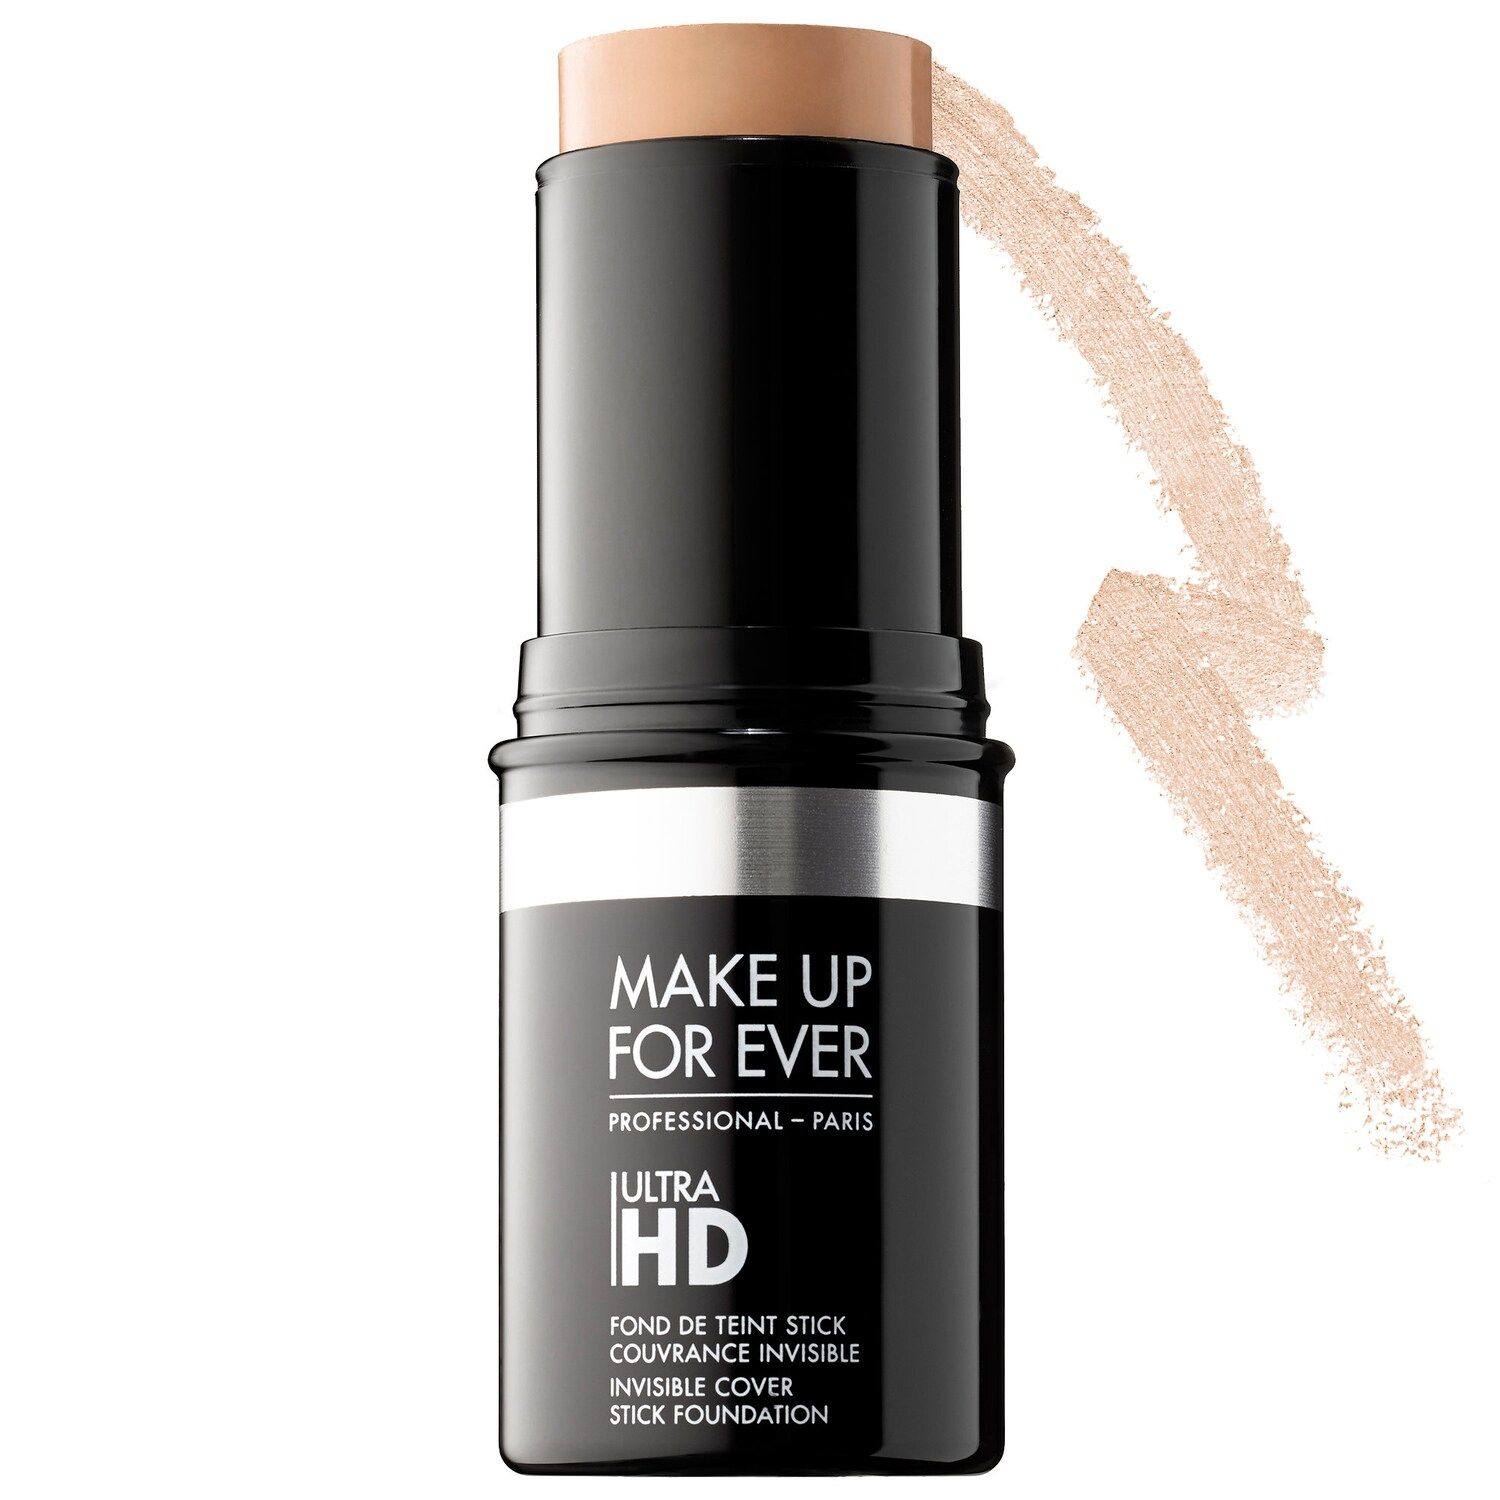 Ultra HD Invisible Cover Stick Foundation MAKE UP FOR